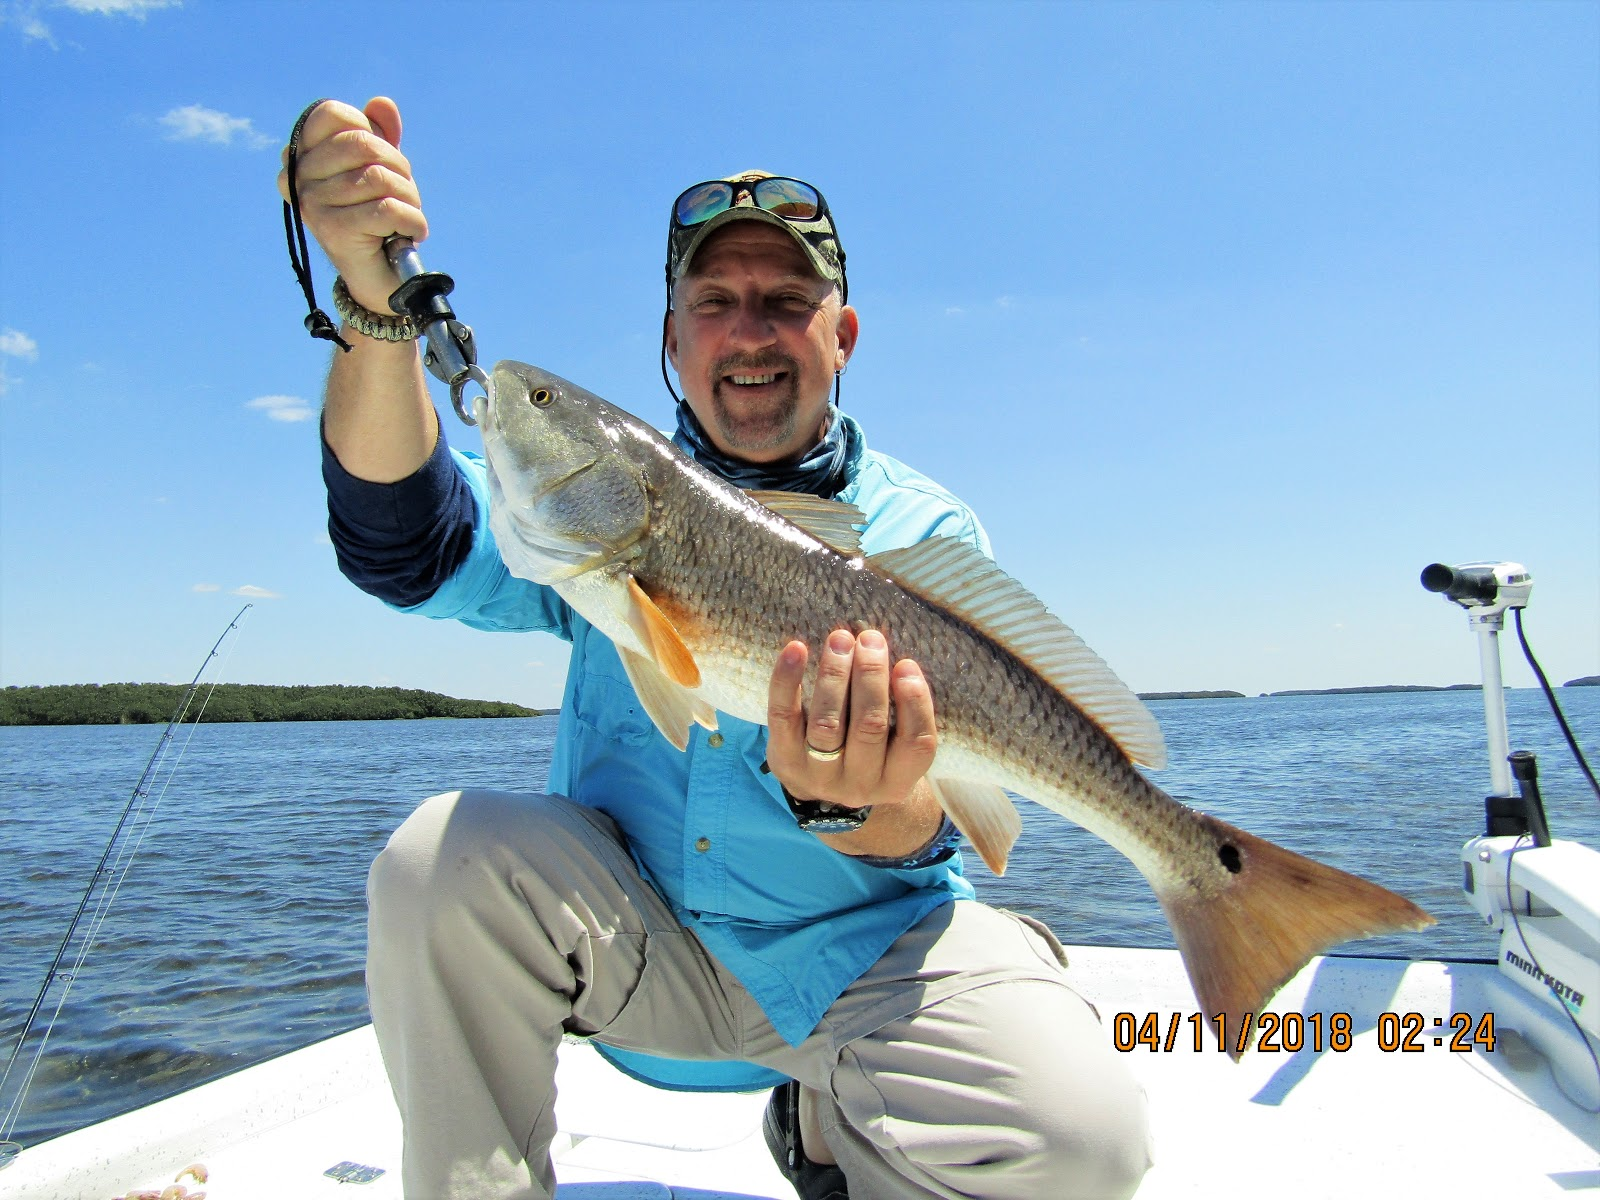 Citrus County Fishing Charter in Crystal River and Homosassa